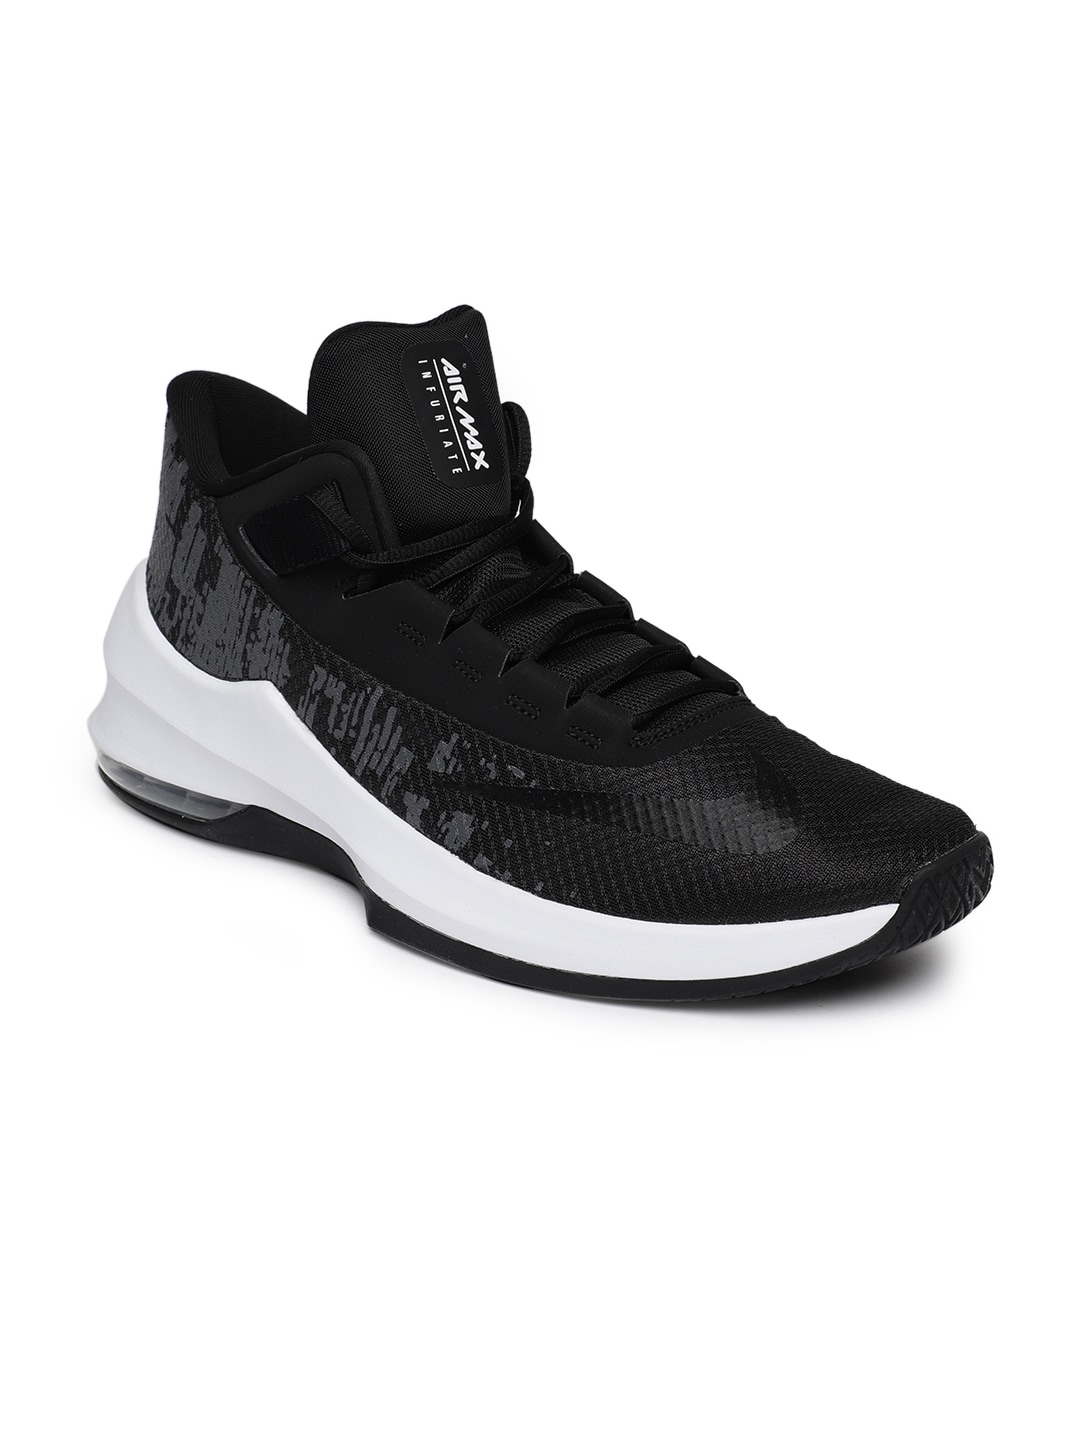 quality design 954fb 69be9 Nike Sport Shoe - Buy Nike Sport Shoes At Best Price Online   Myntra